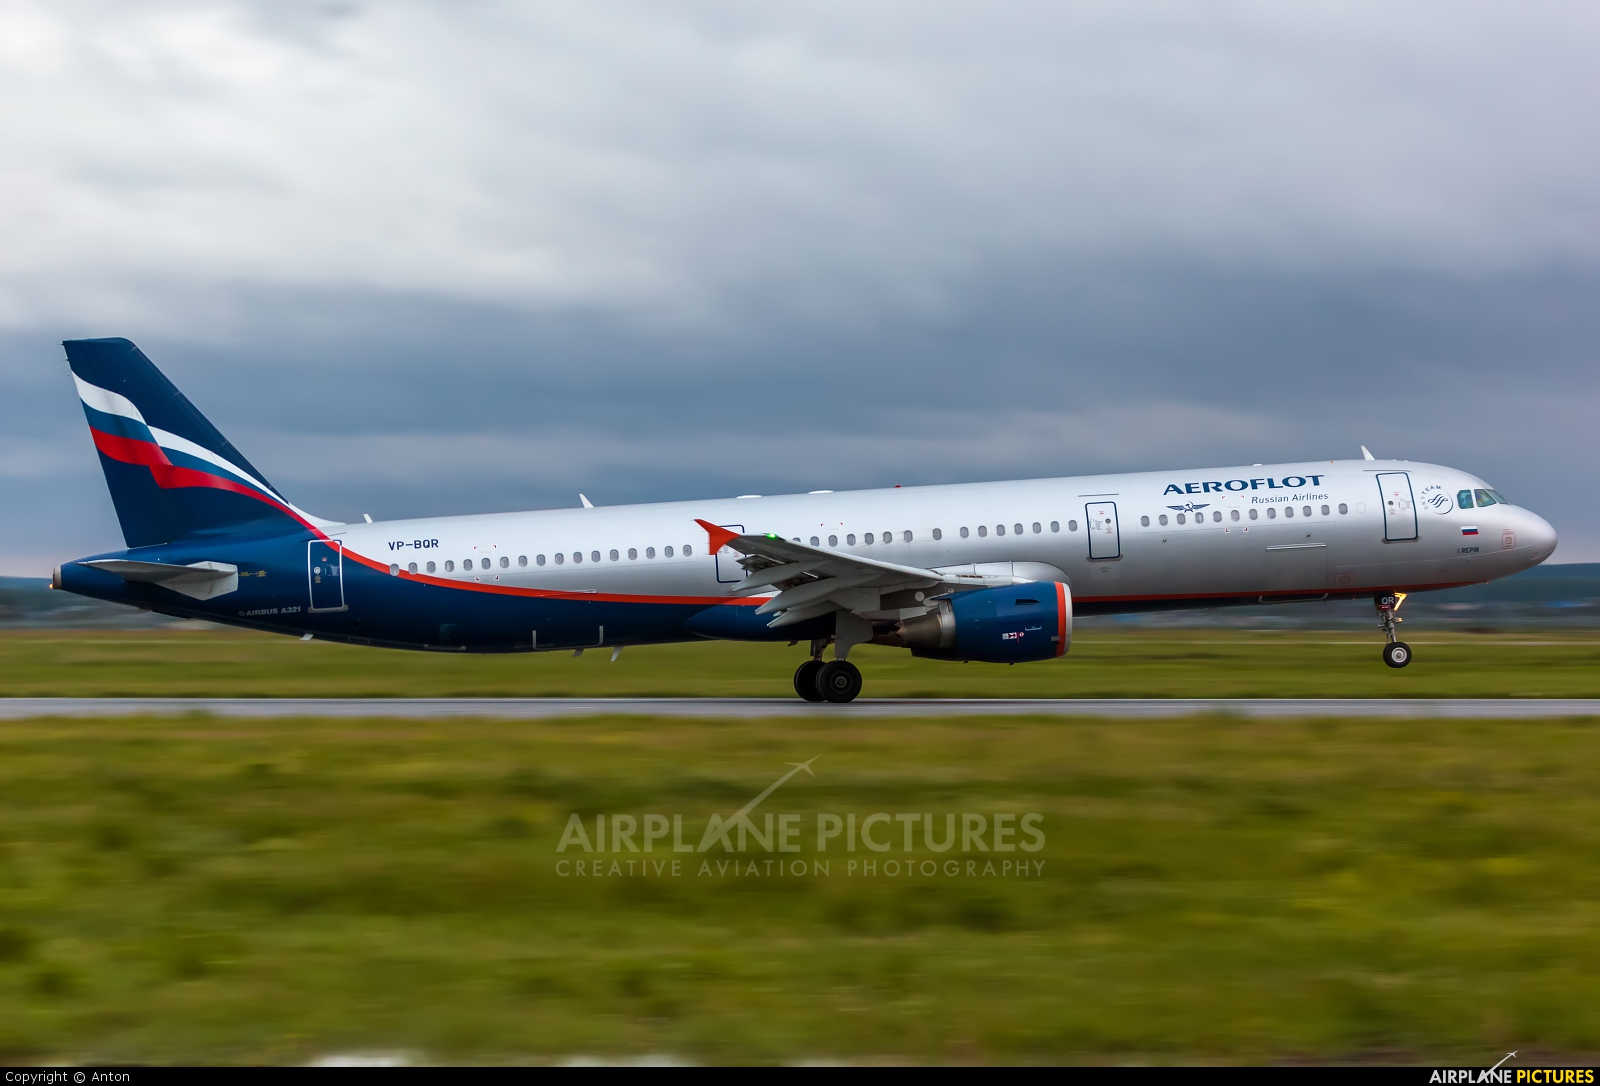 Aeroflot VP-BQR aircraft at Koltsovo - Ekaterinburg photo.